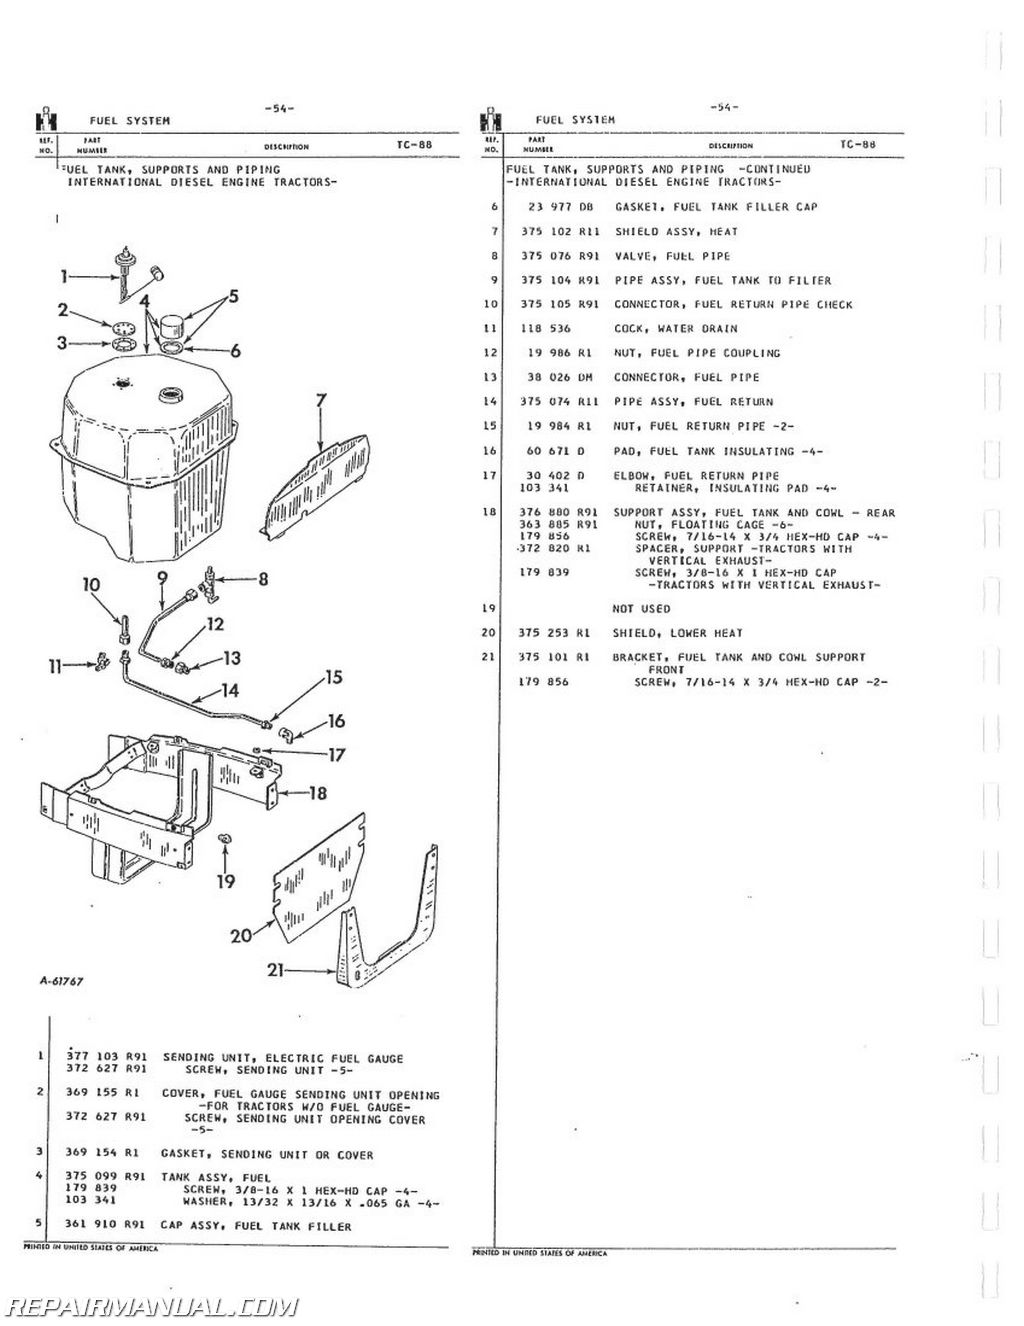 504 farmall hydraulic diagram 1946 farmall h hydraulic diagram international harvester 504 2504 gas lp and dsl parts manual